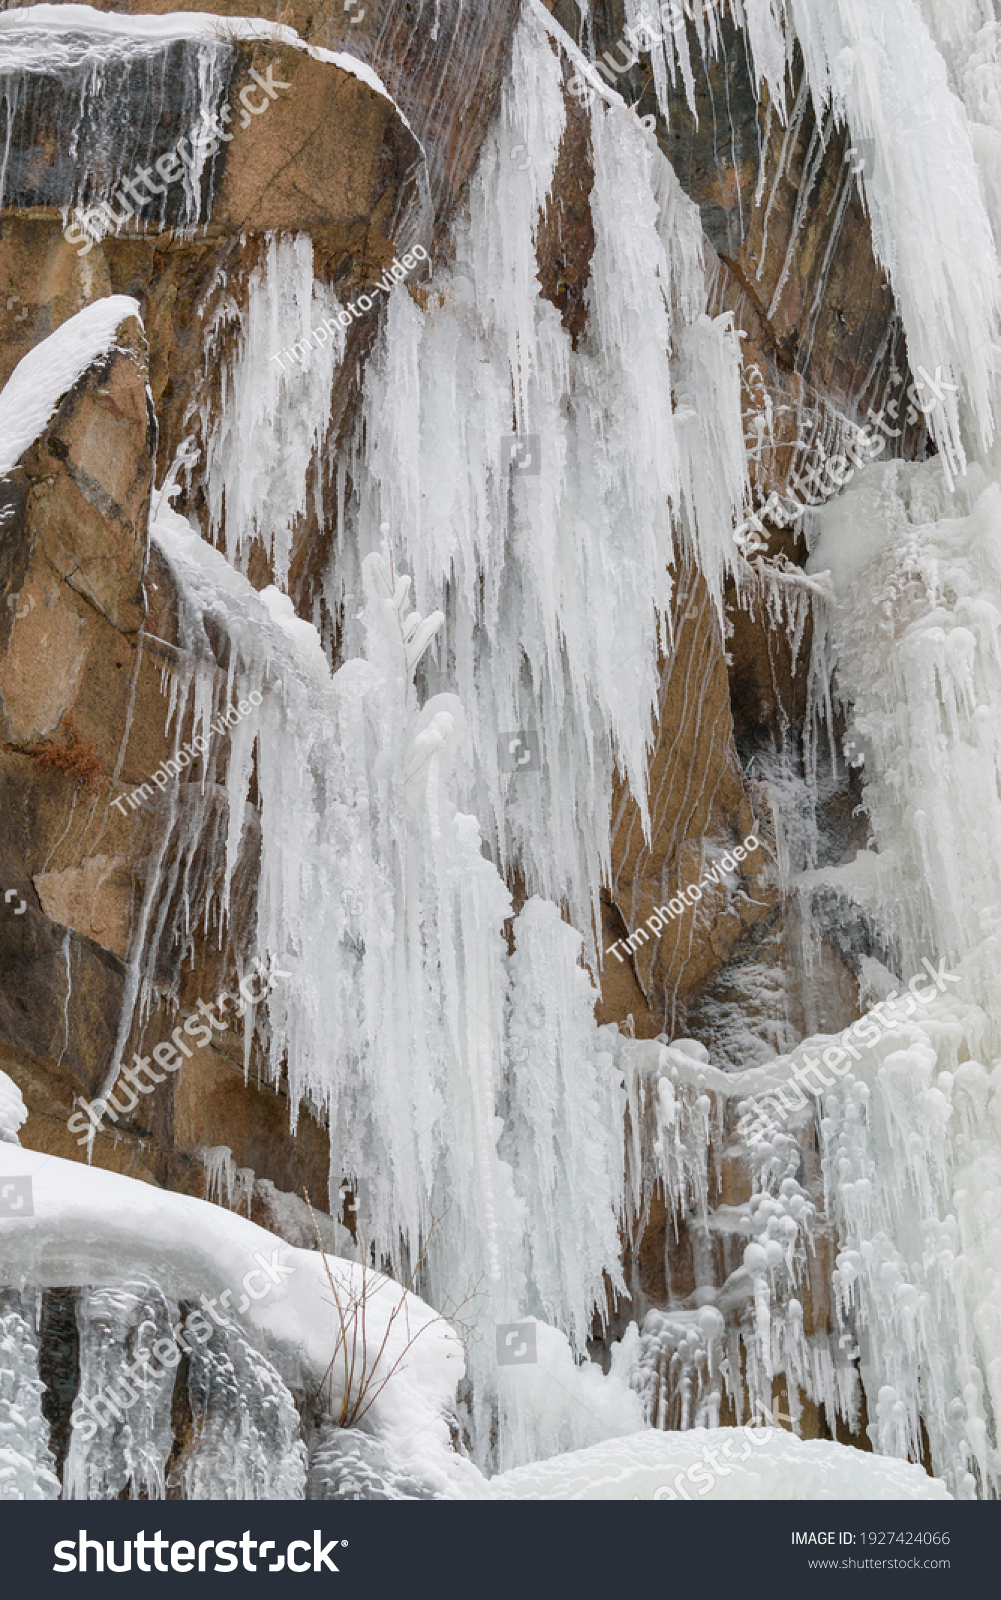 stock-photo-frozen-stream-of-water-in-a-